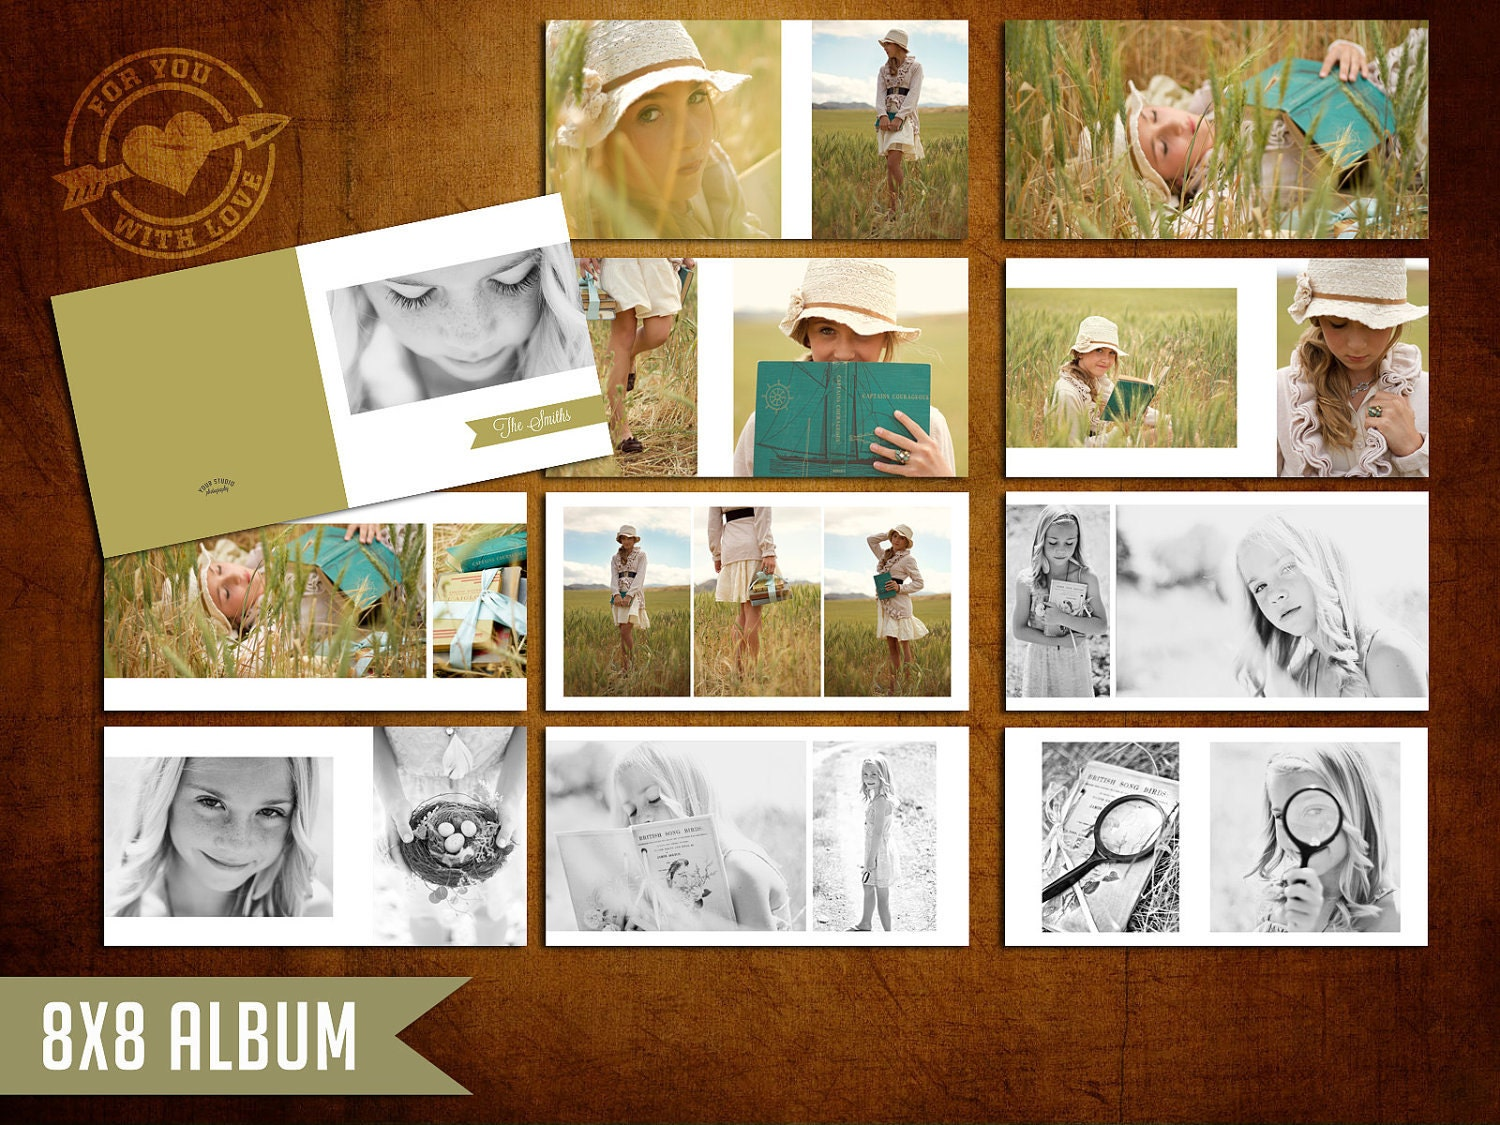 8x8 mod album template for photographers by 4uwlove on etsy. Black Bedroom Furniture Sets. Home Design Ideas